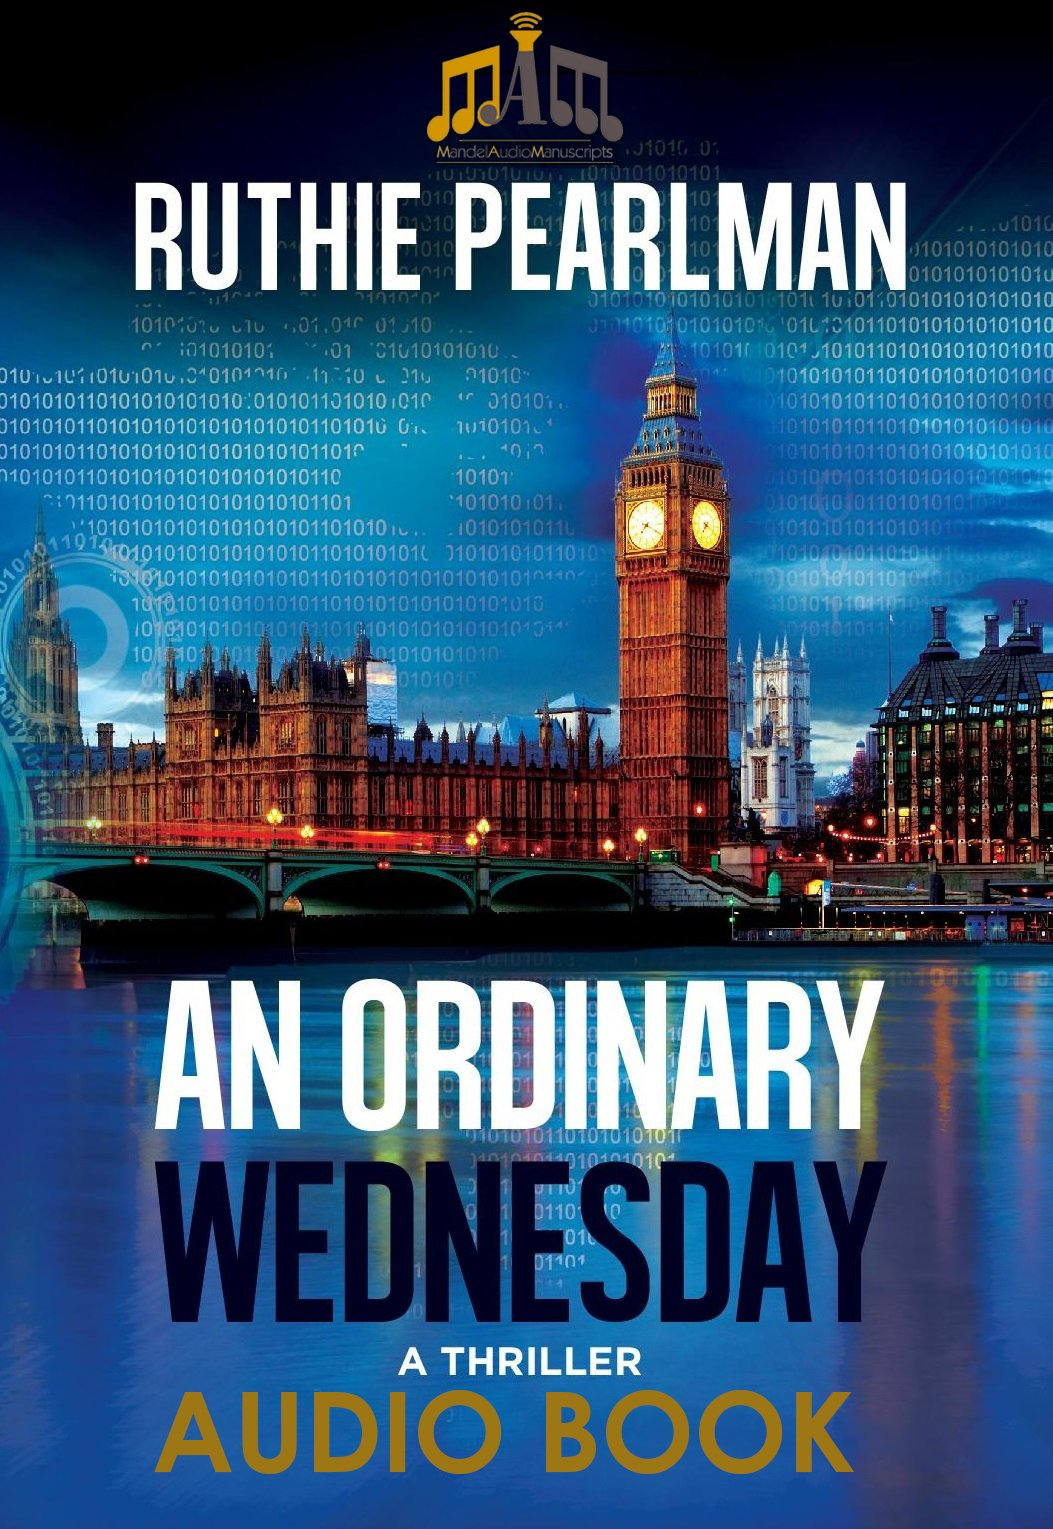 Ruthie Pearlman - An Ordinary Wednesday  (Audio book)